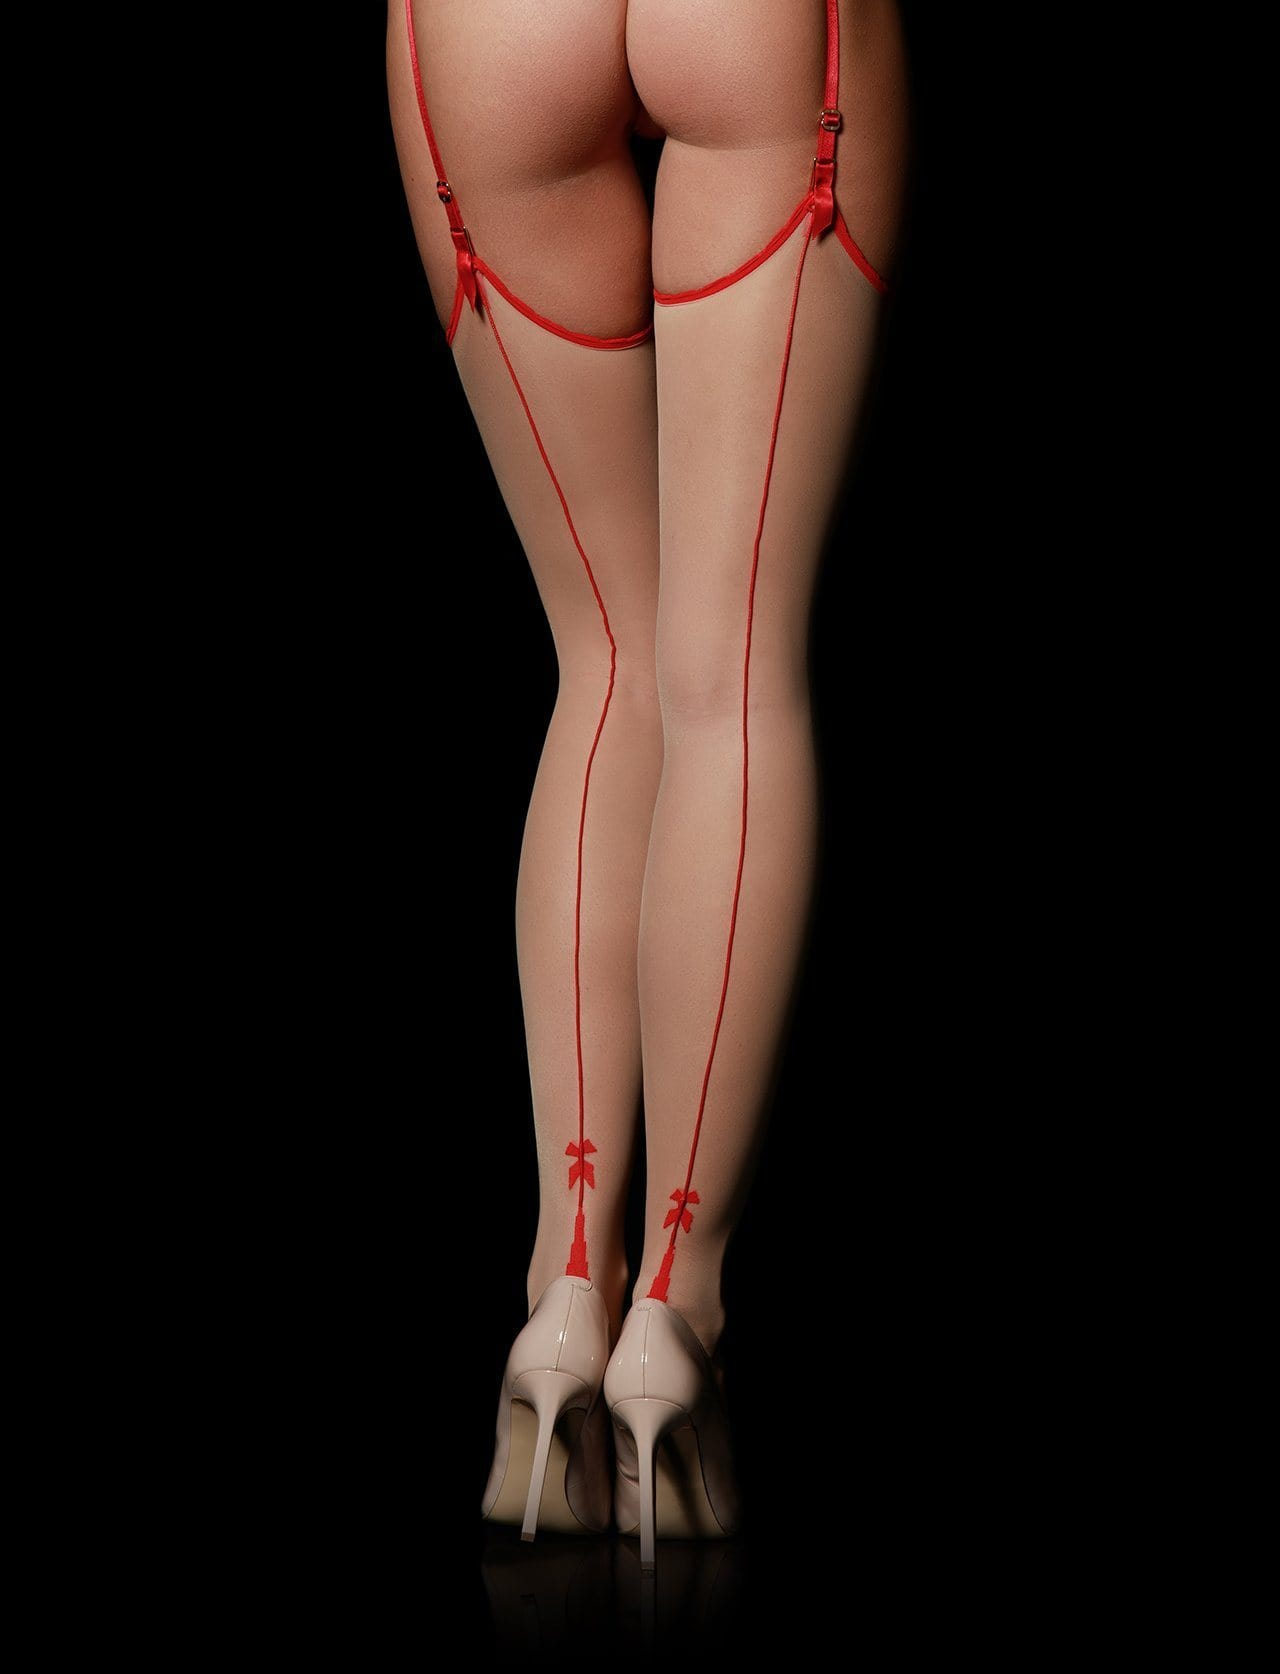 Chic Bowtie Red Stockings - Shop Hosiery | Honey Birdette UK